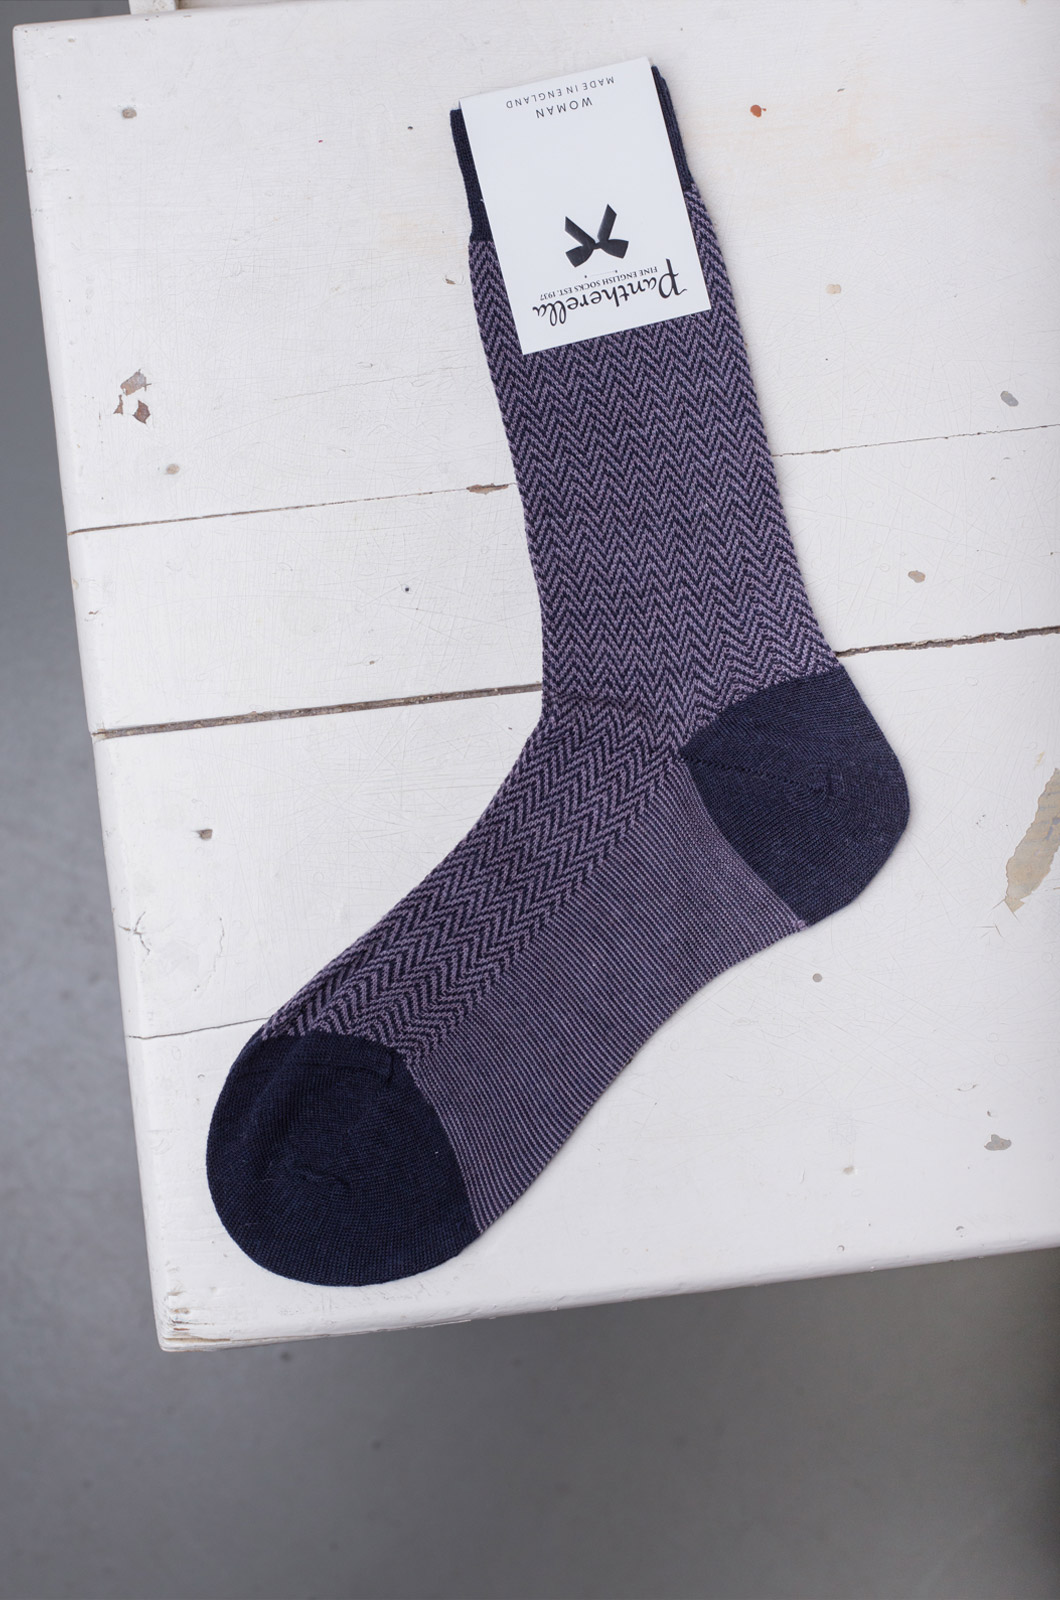 Pantherella - Short Socks Wool - Navy/Aubergine